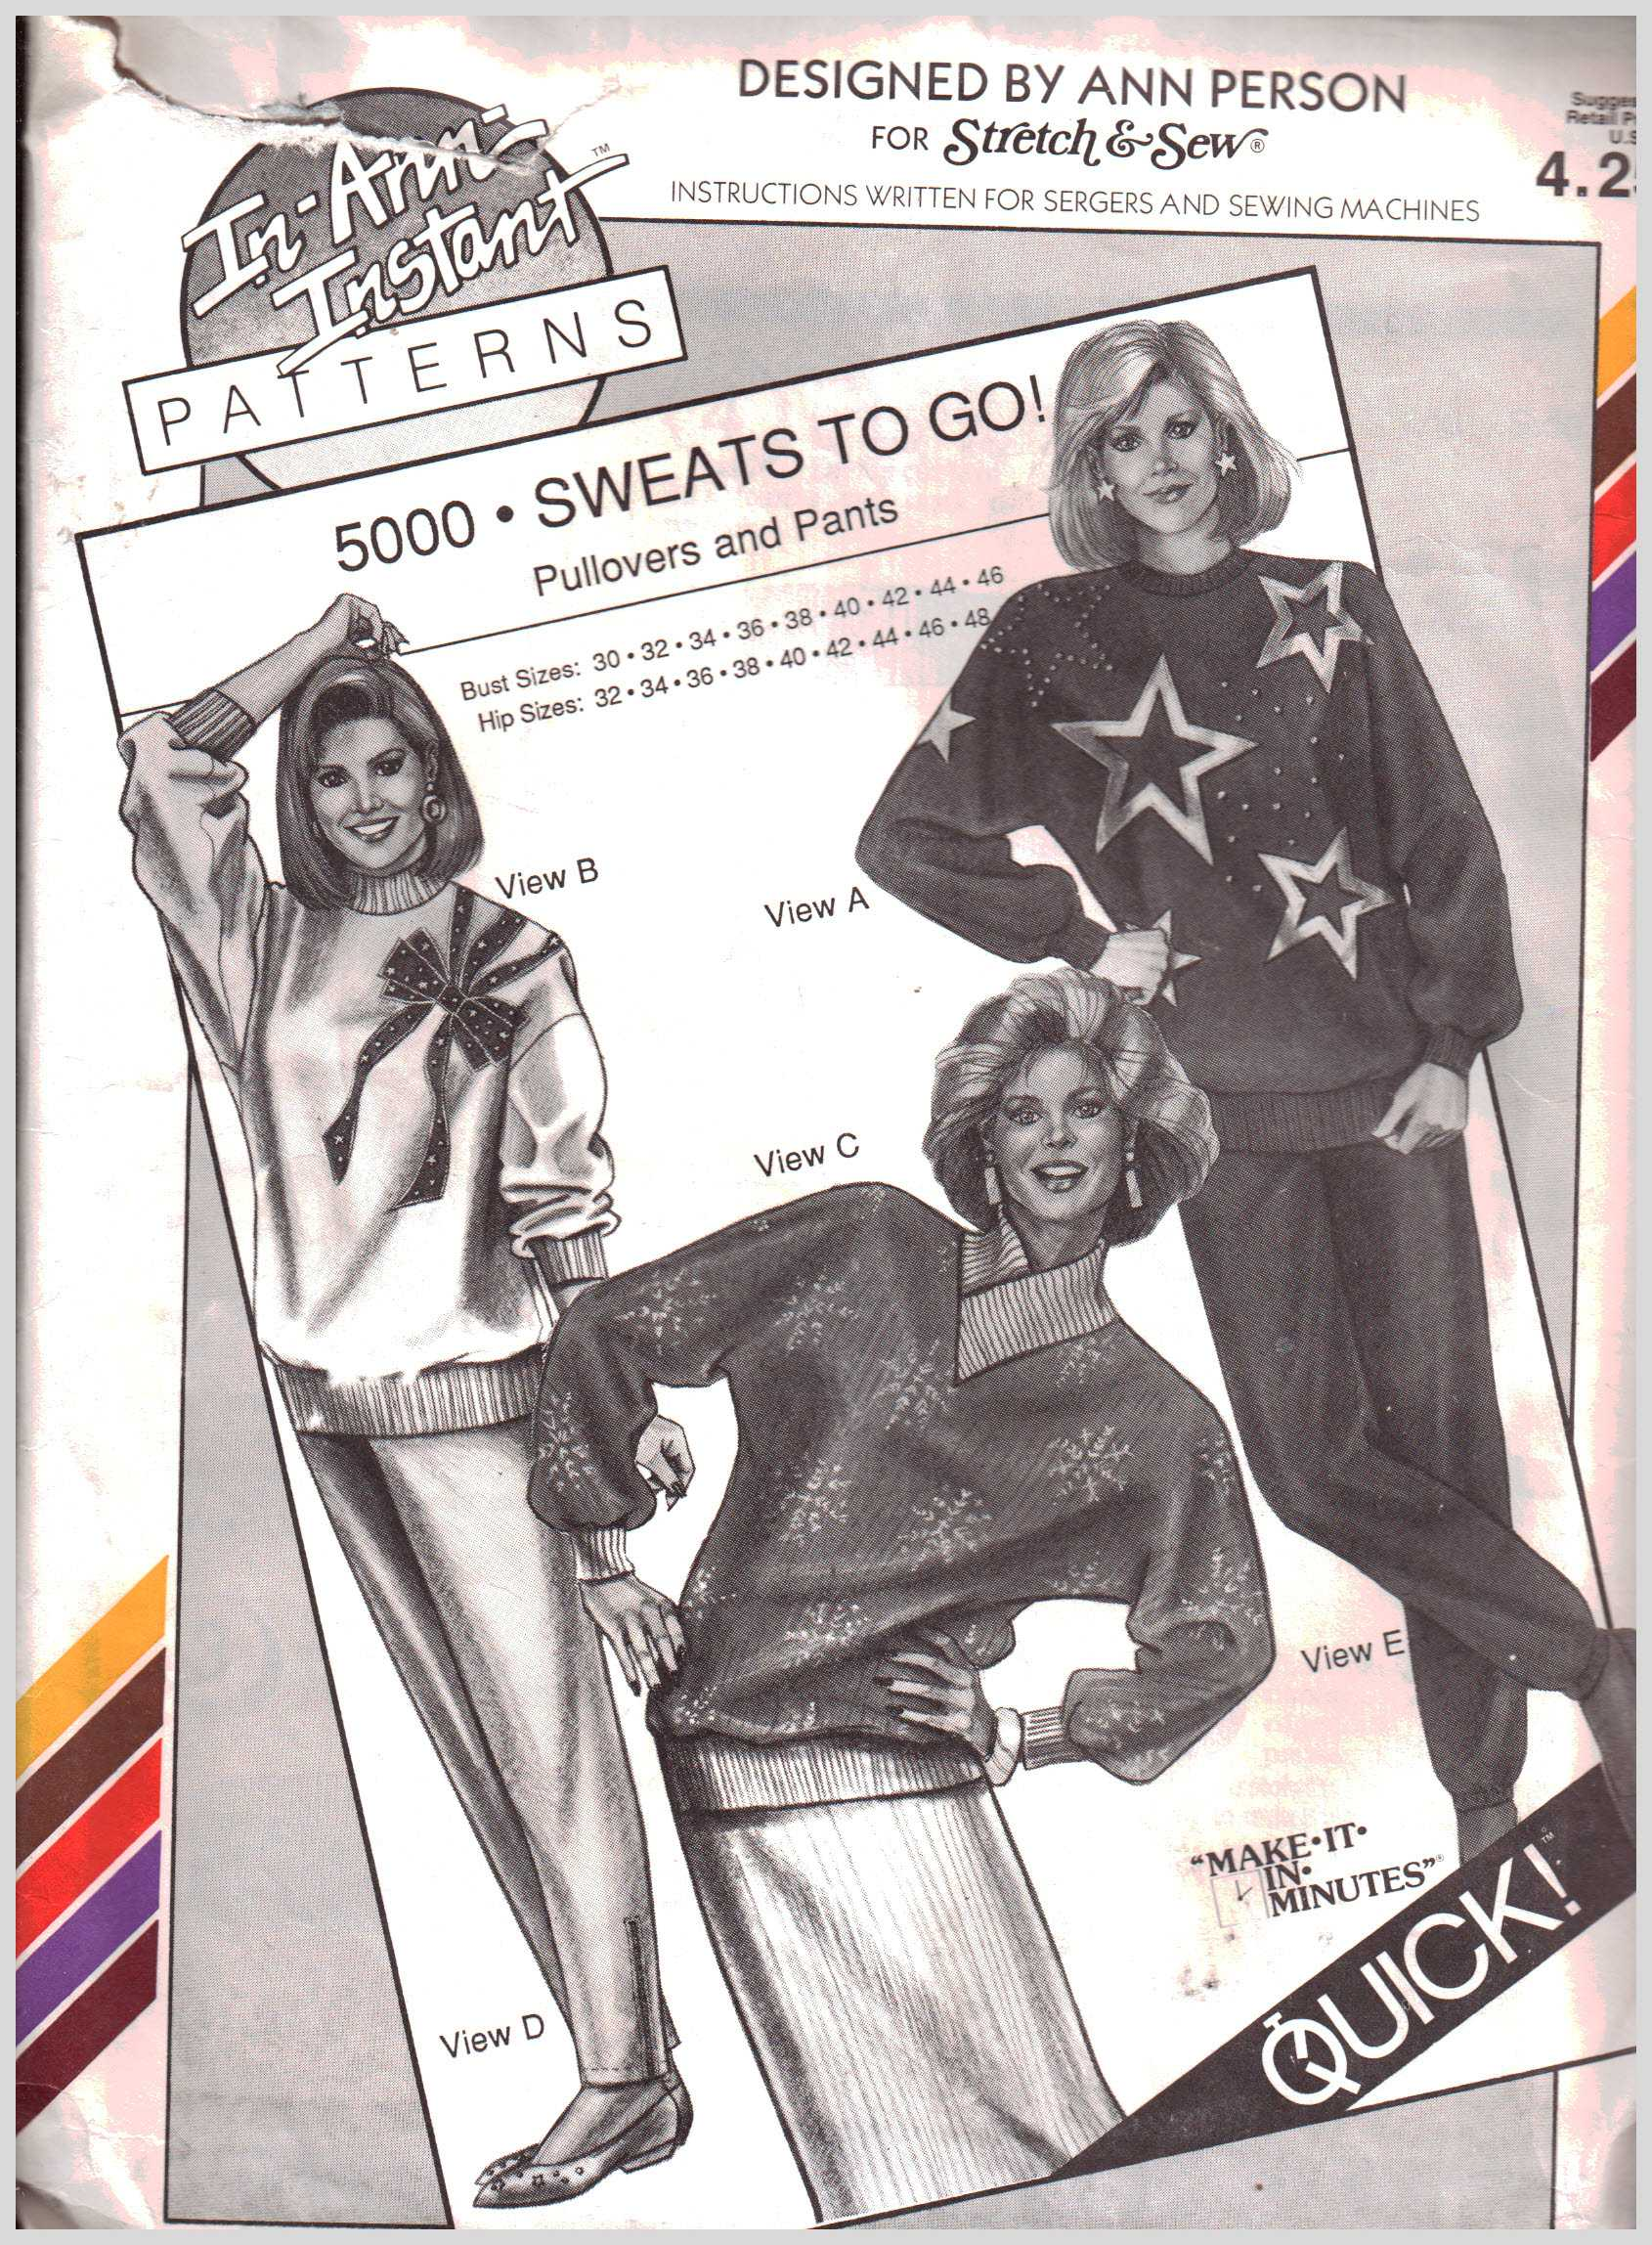 Stretch & Sew 5000 Sweats to Go! Pullovers and Pants Size: Bust 30 ...